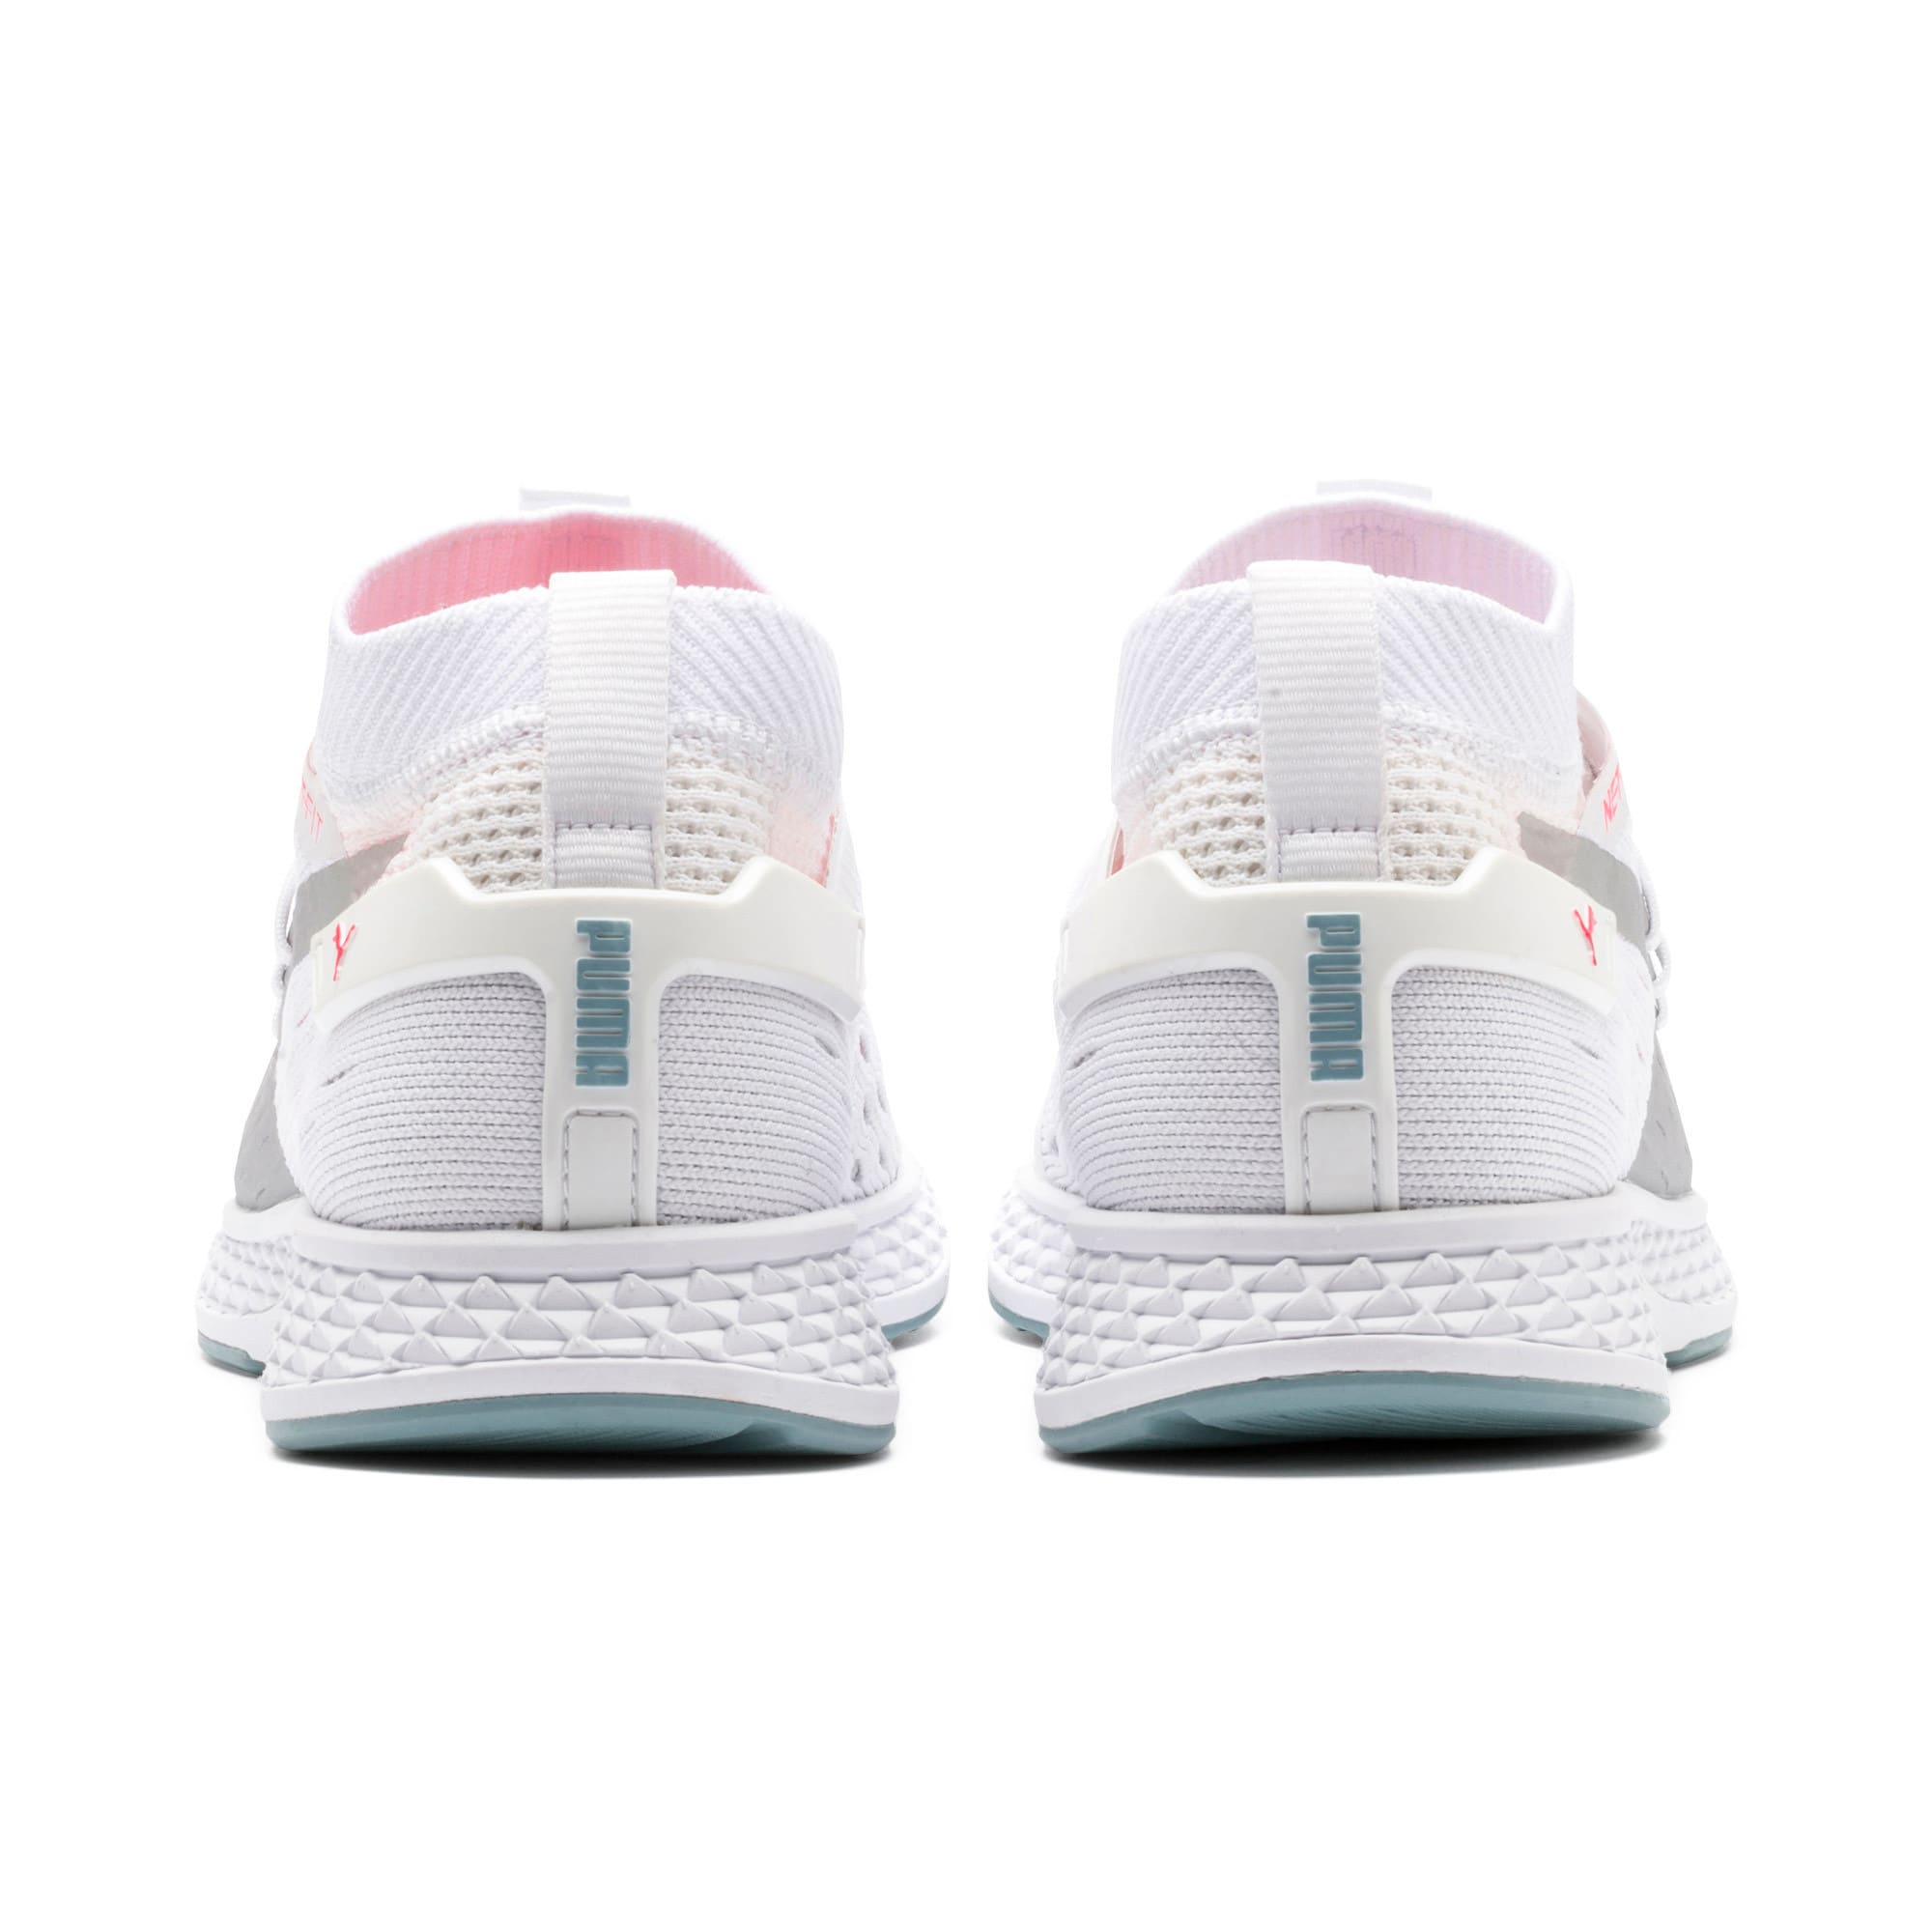 Thumbnail 5 of SPEED 500 Women's Running Shoes, White-Silver-Milky Blue-Pink, medium